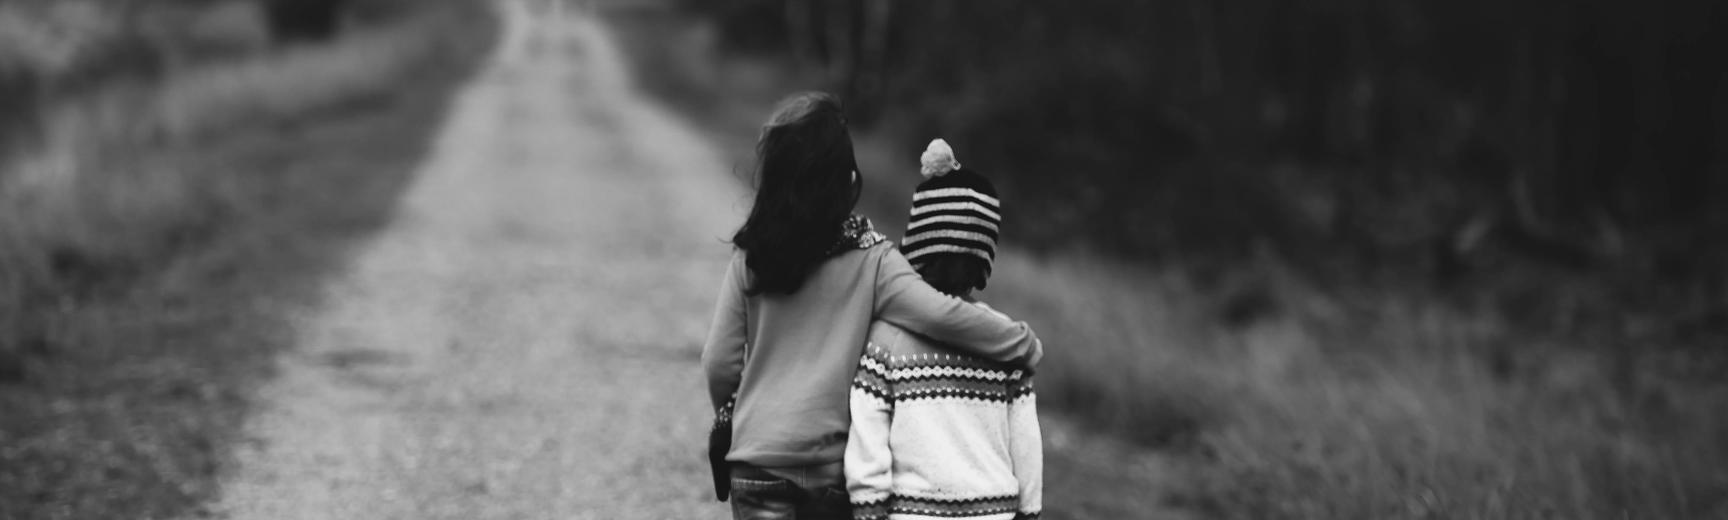 A black and white photo of two small children walking down a track, away from the camera. The bigger child has their arm around the smaller one, as if comforting them.